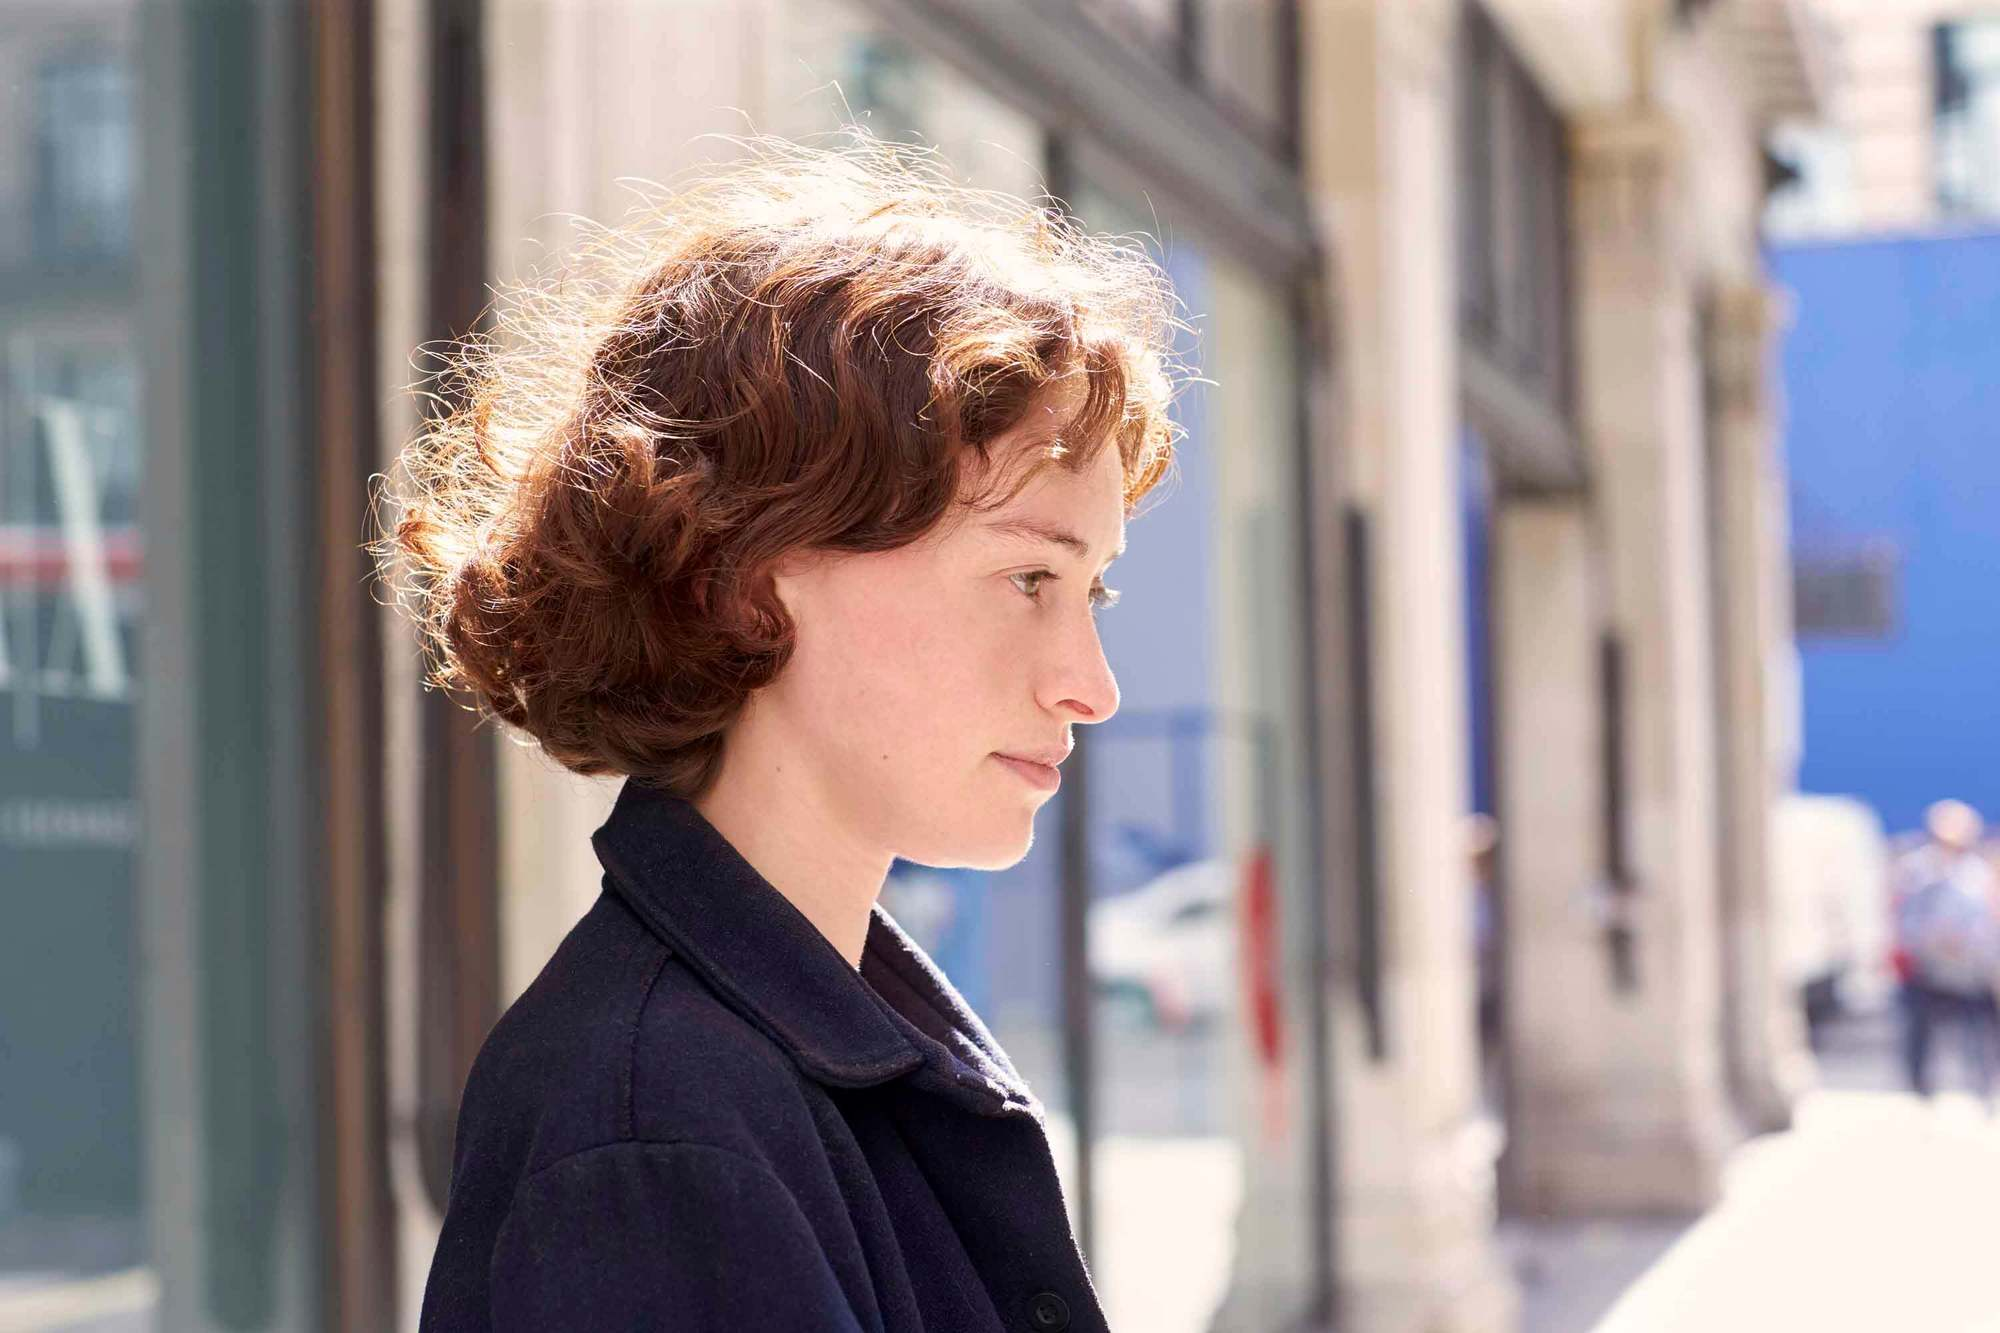 Brunette woman with curly hair bob